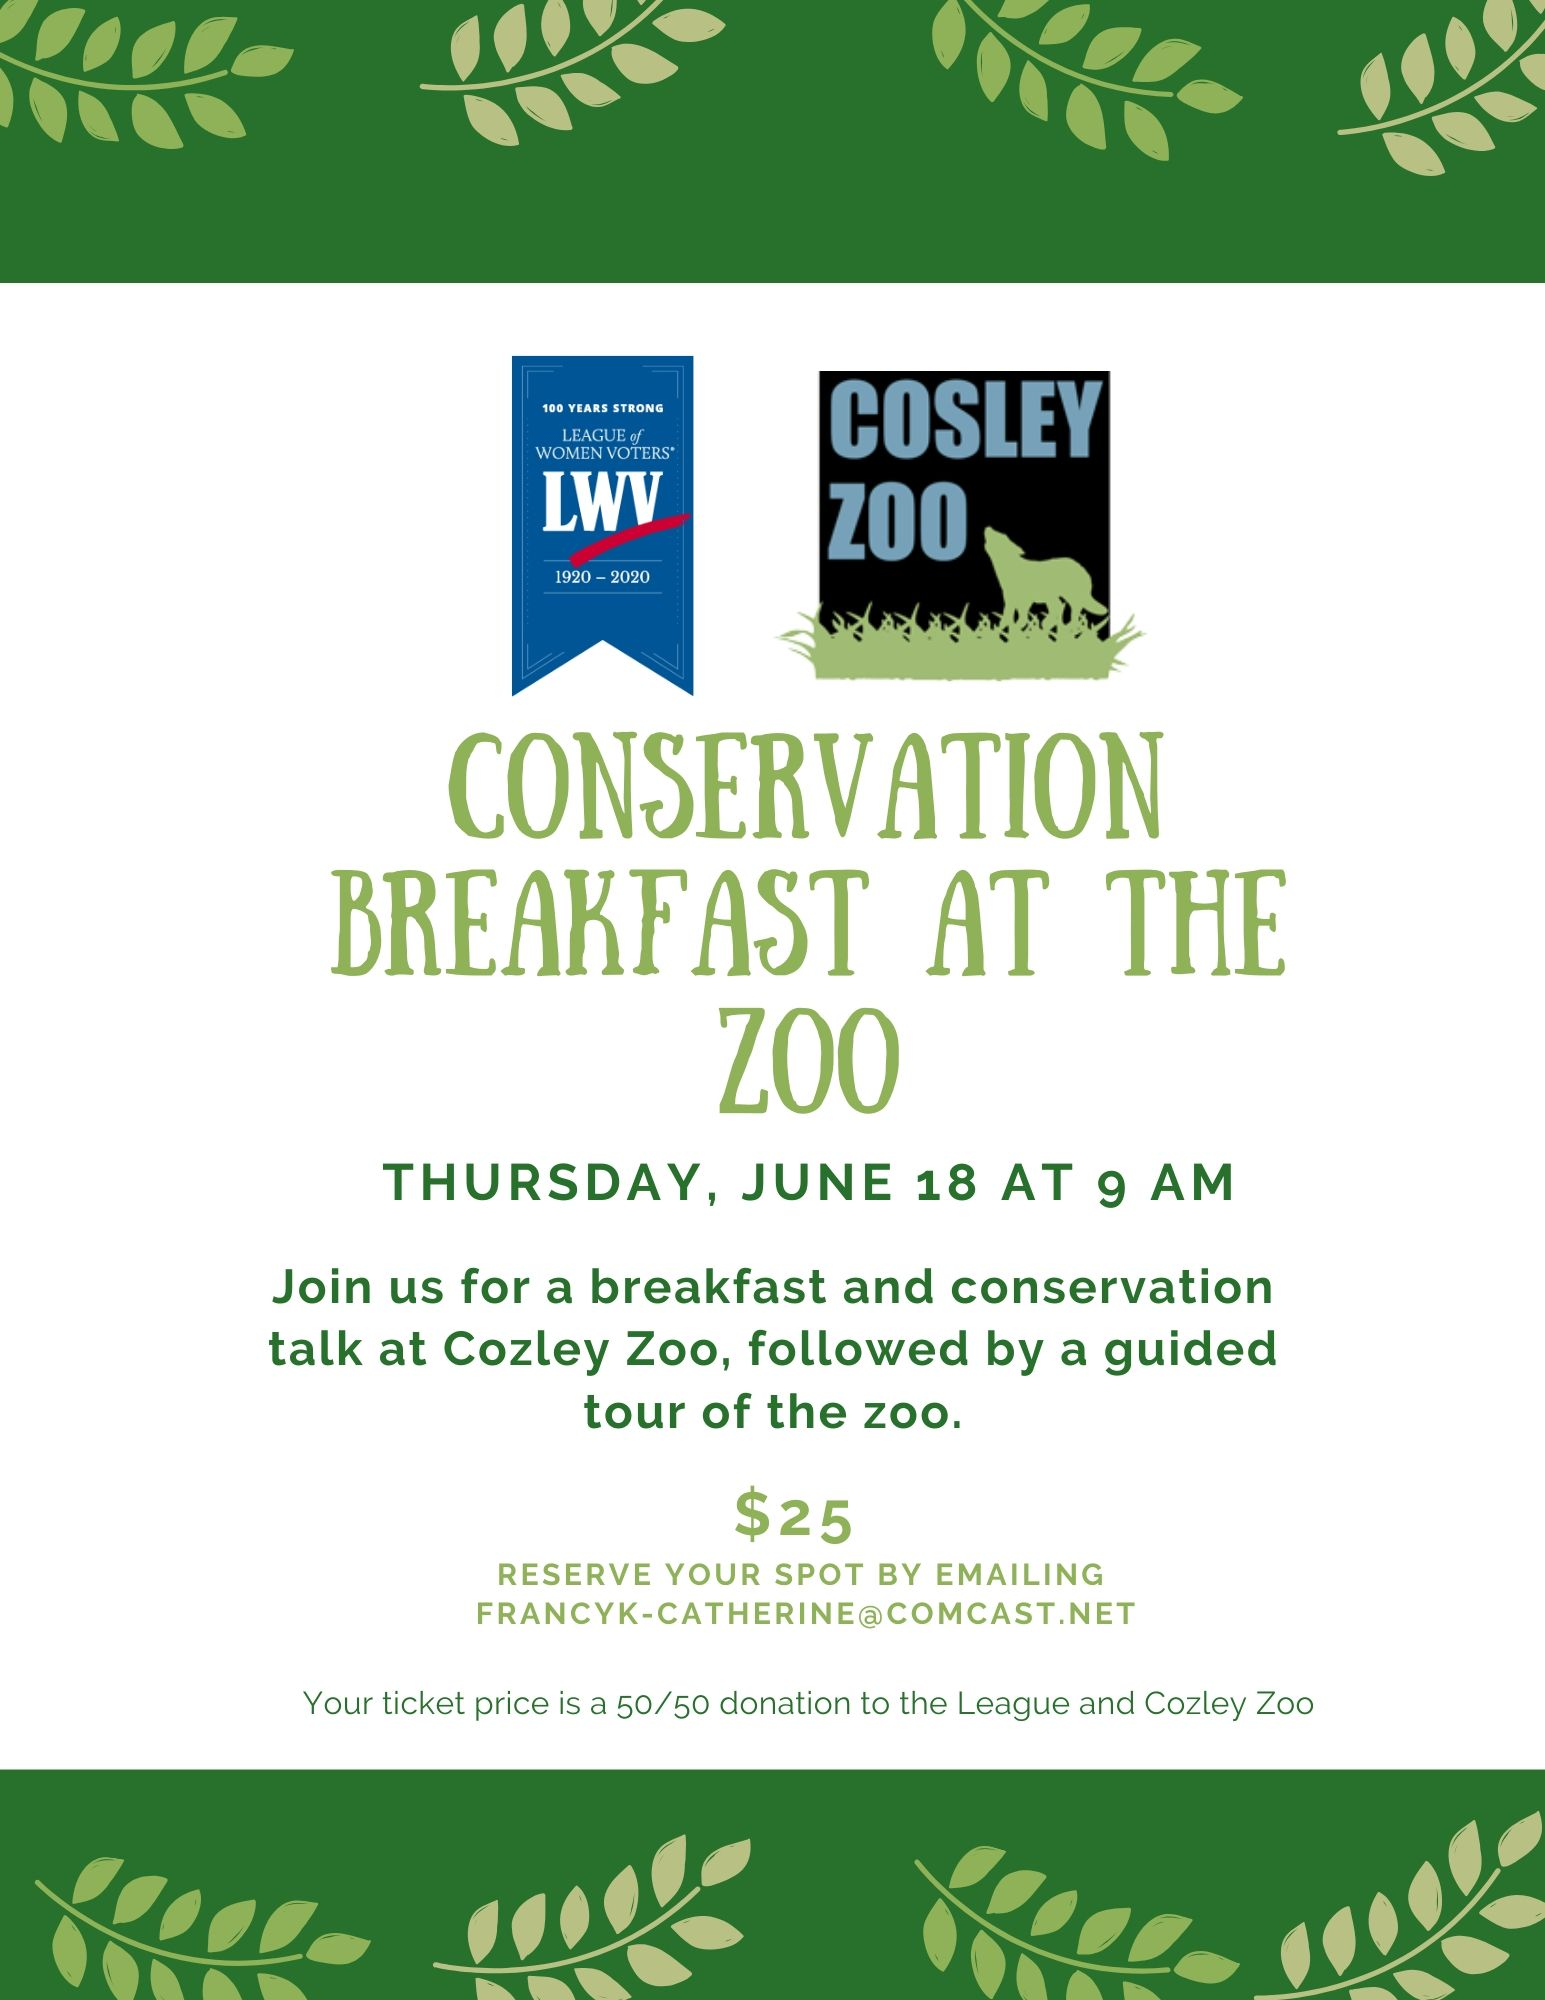 Cosley Breakfast at the Zoo Fundraiser